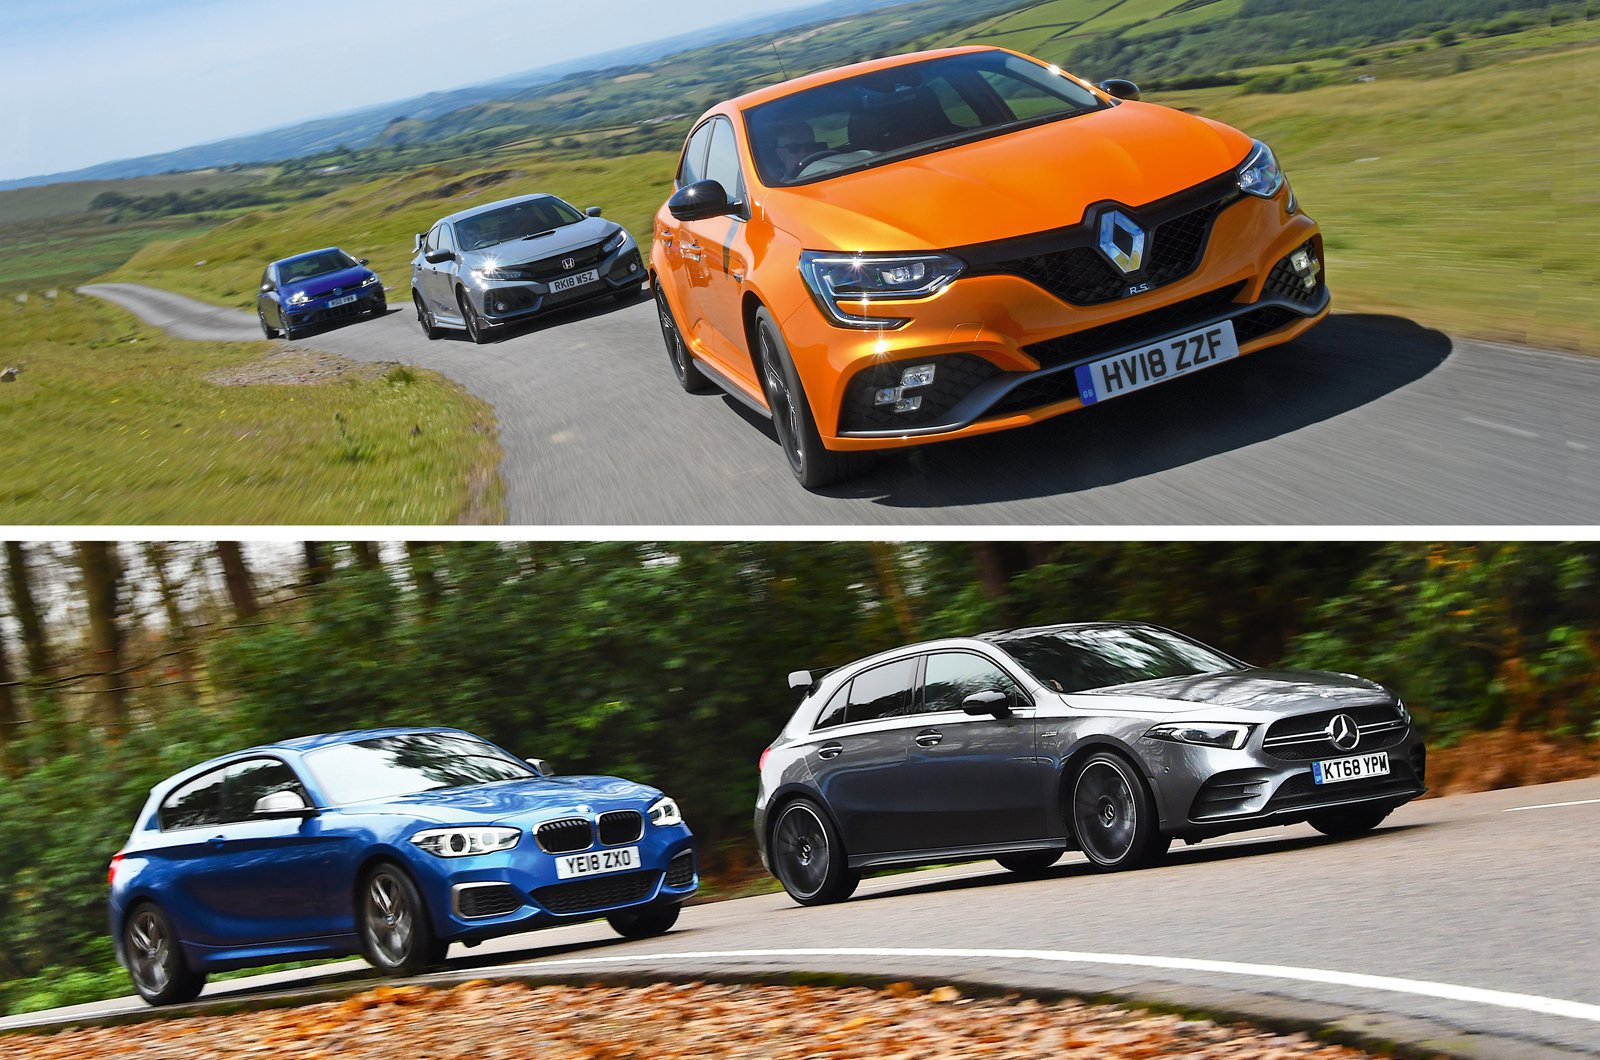 Hot hatch compilation image